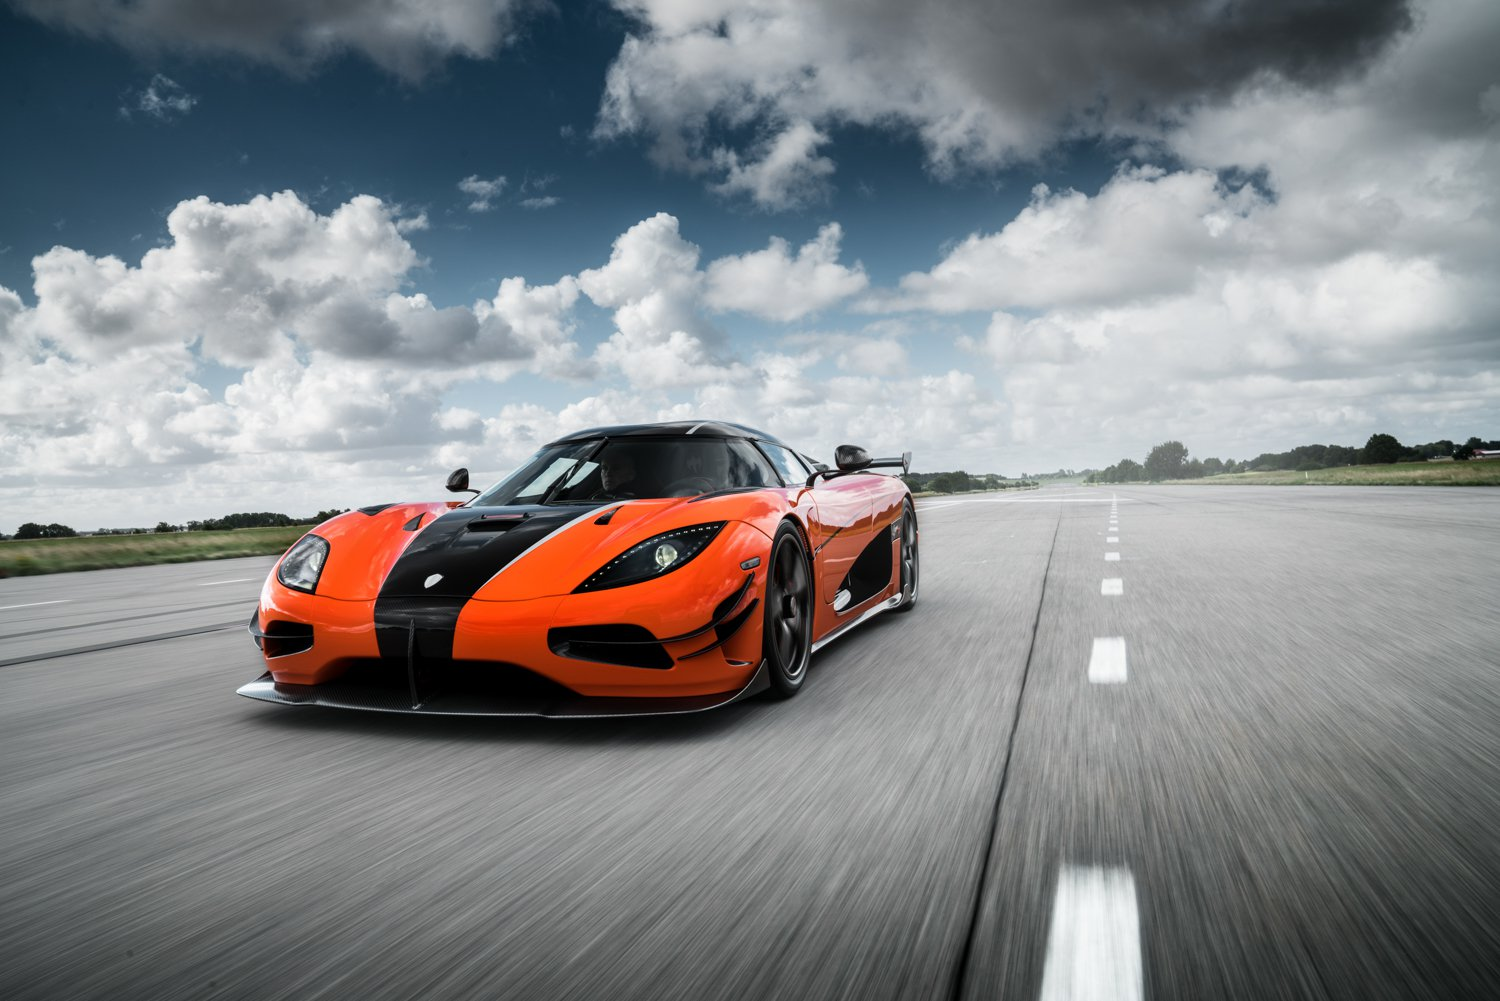 Thinking of Buying a Koenigsegg? LOL, Good Luck